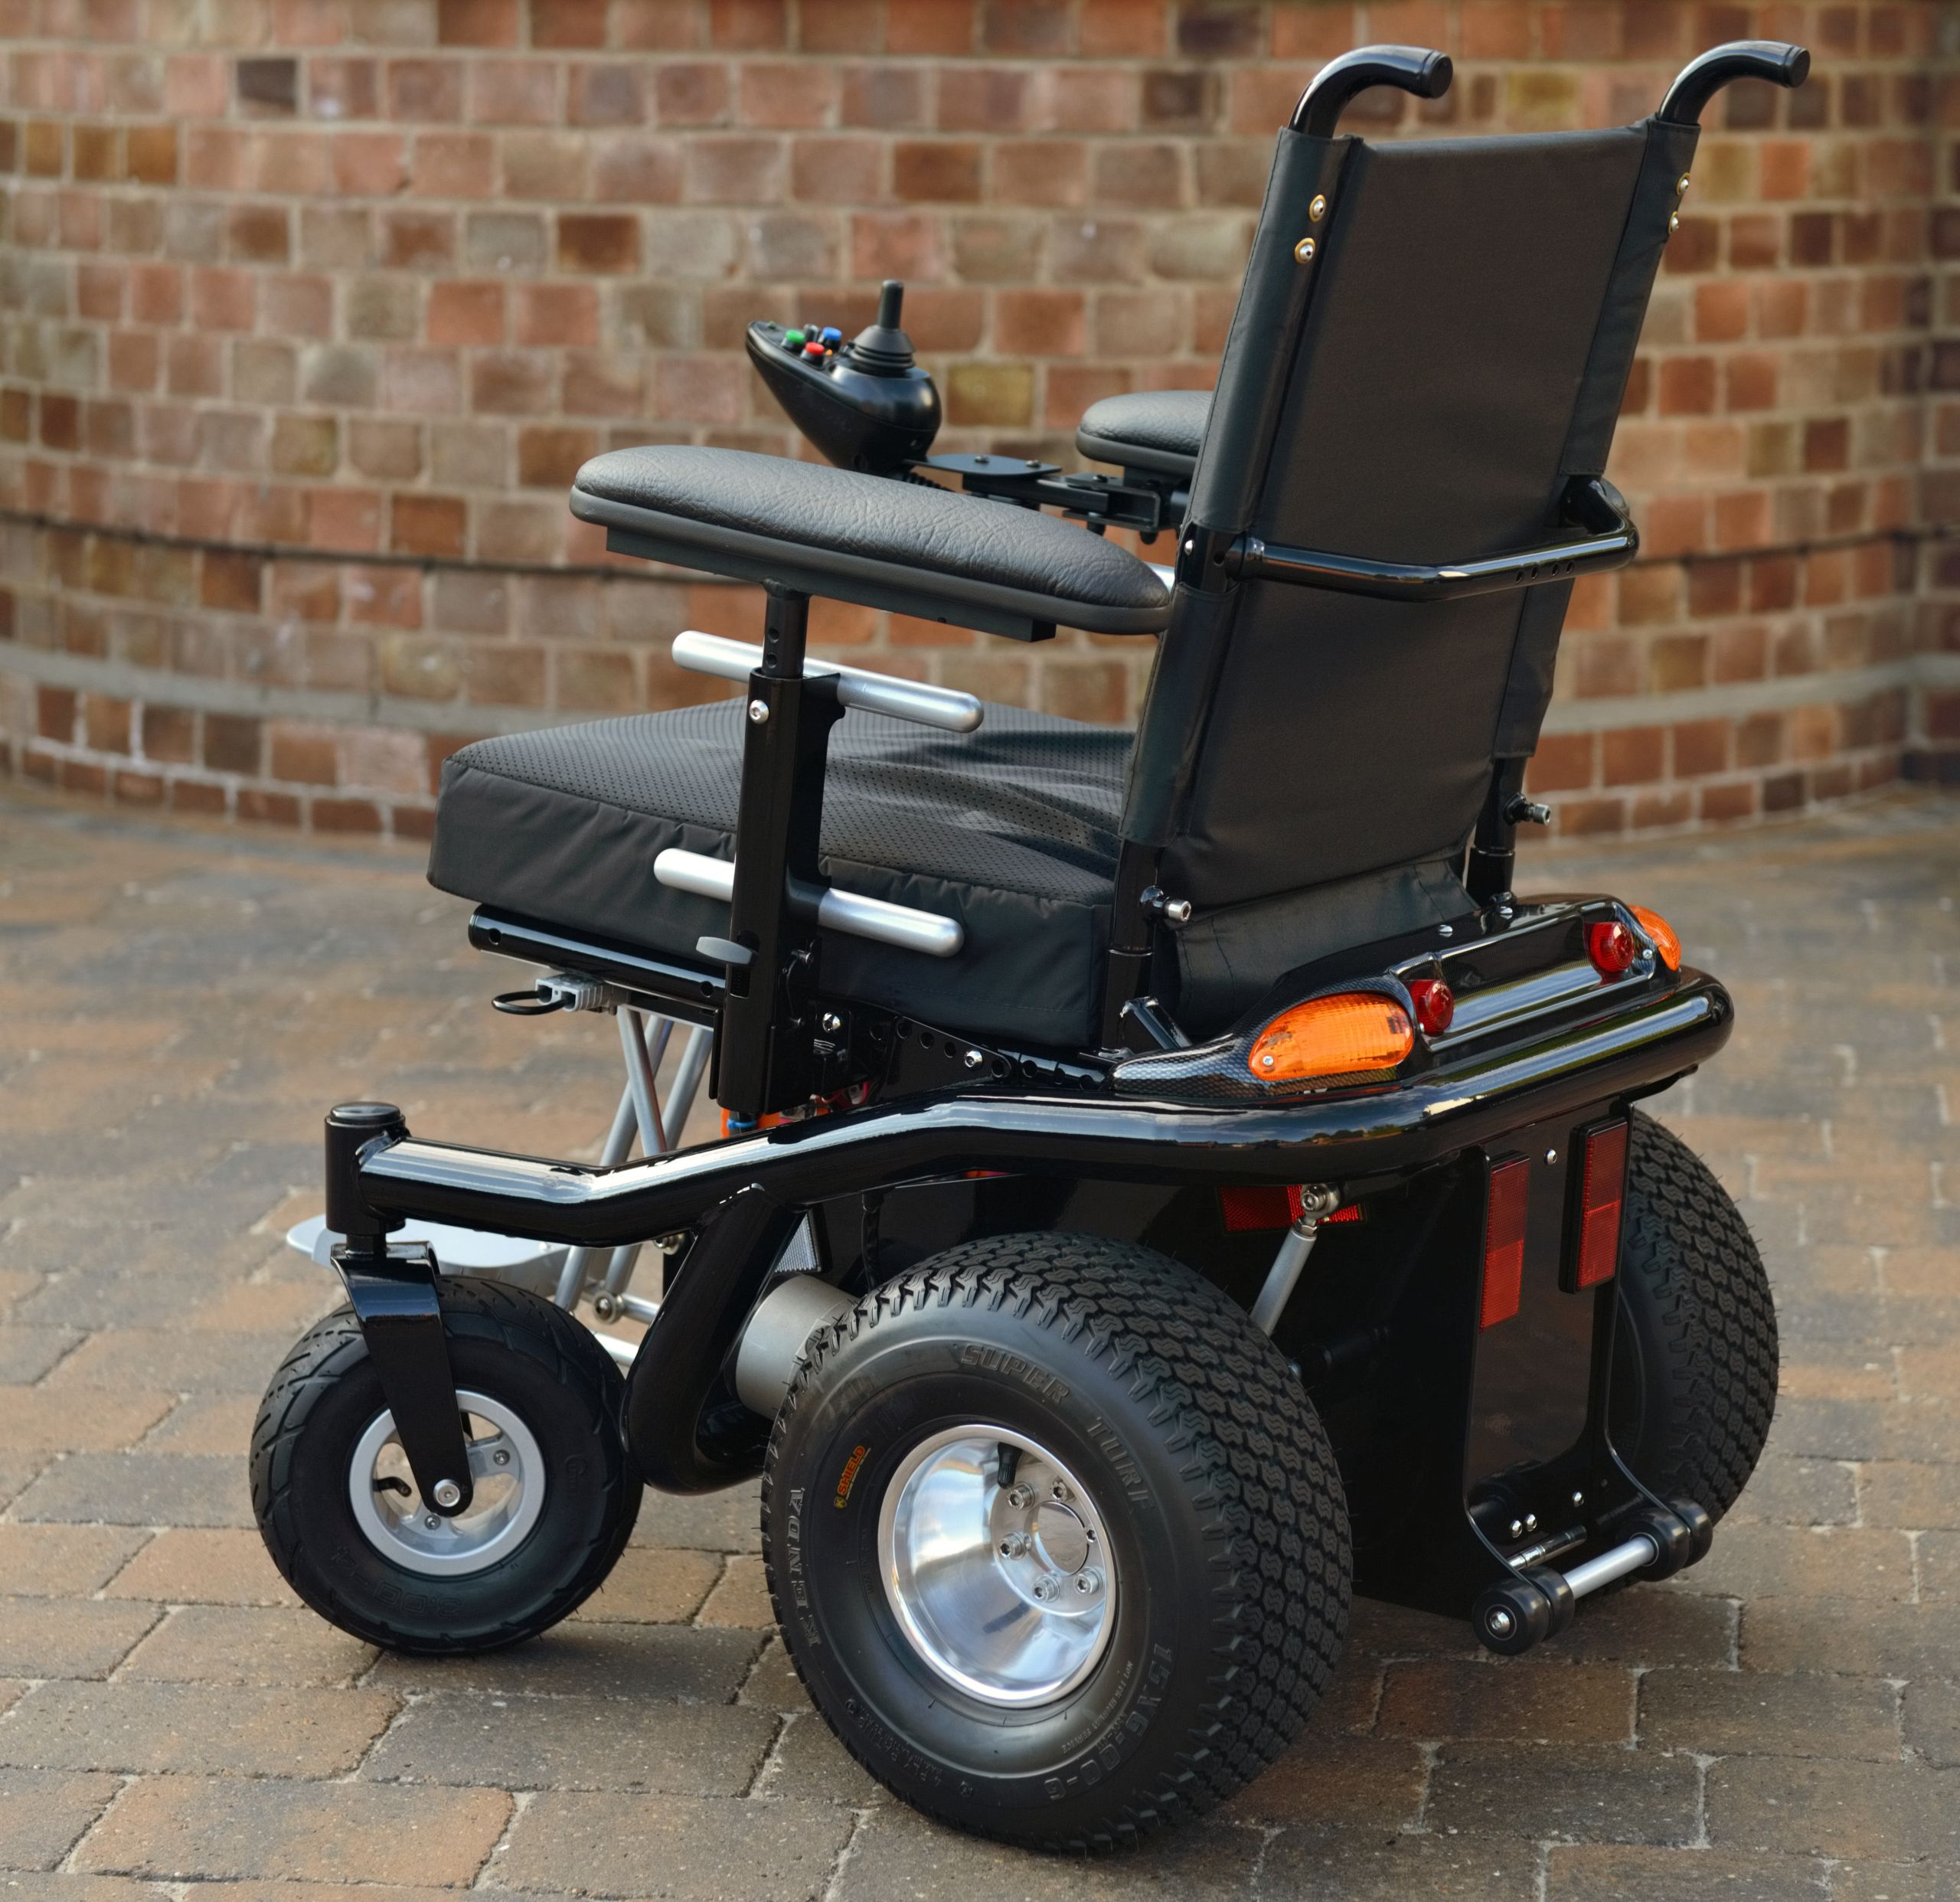 power chair with tracks folding concert lawn chairs bm3 powerchair the 16mph fast long range lithium